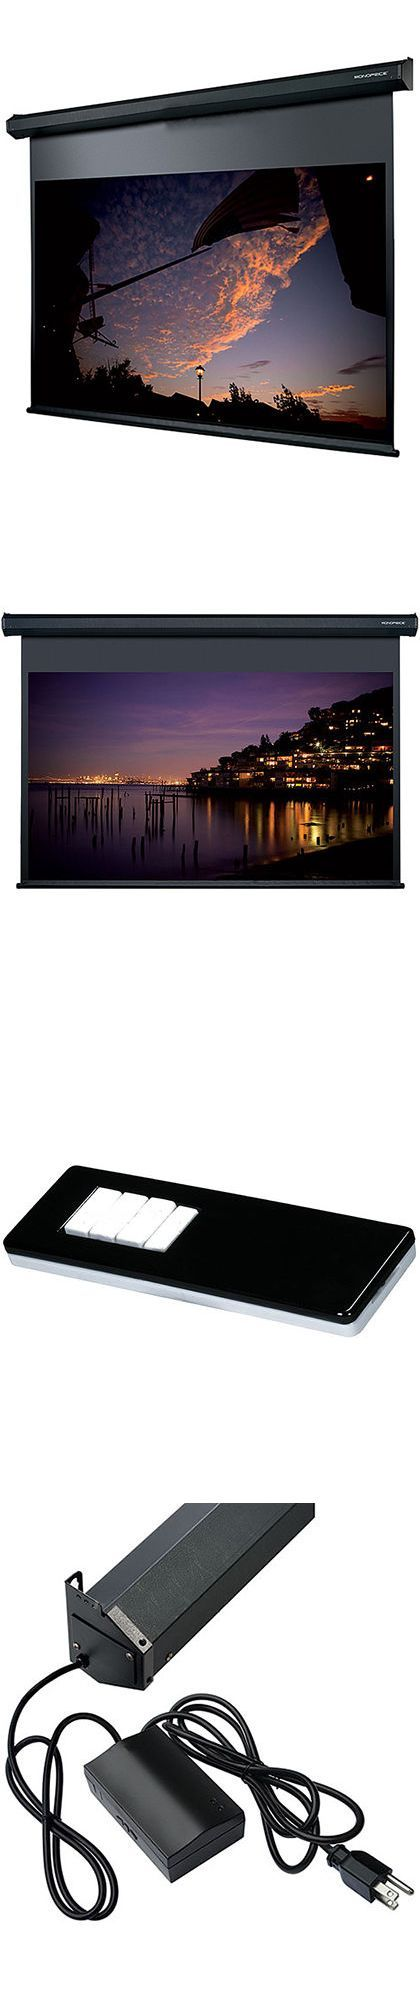 Projection Screens and Material: 150 Motorized Projector Screen 4:3 White Matte Remote Home Theater Projection BUY IT NOW ONLY: $935.64 #hometheaterprojector